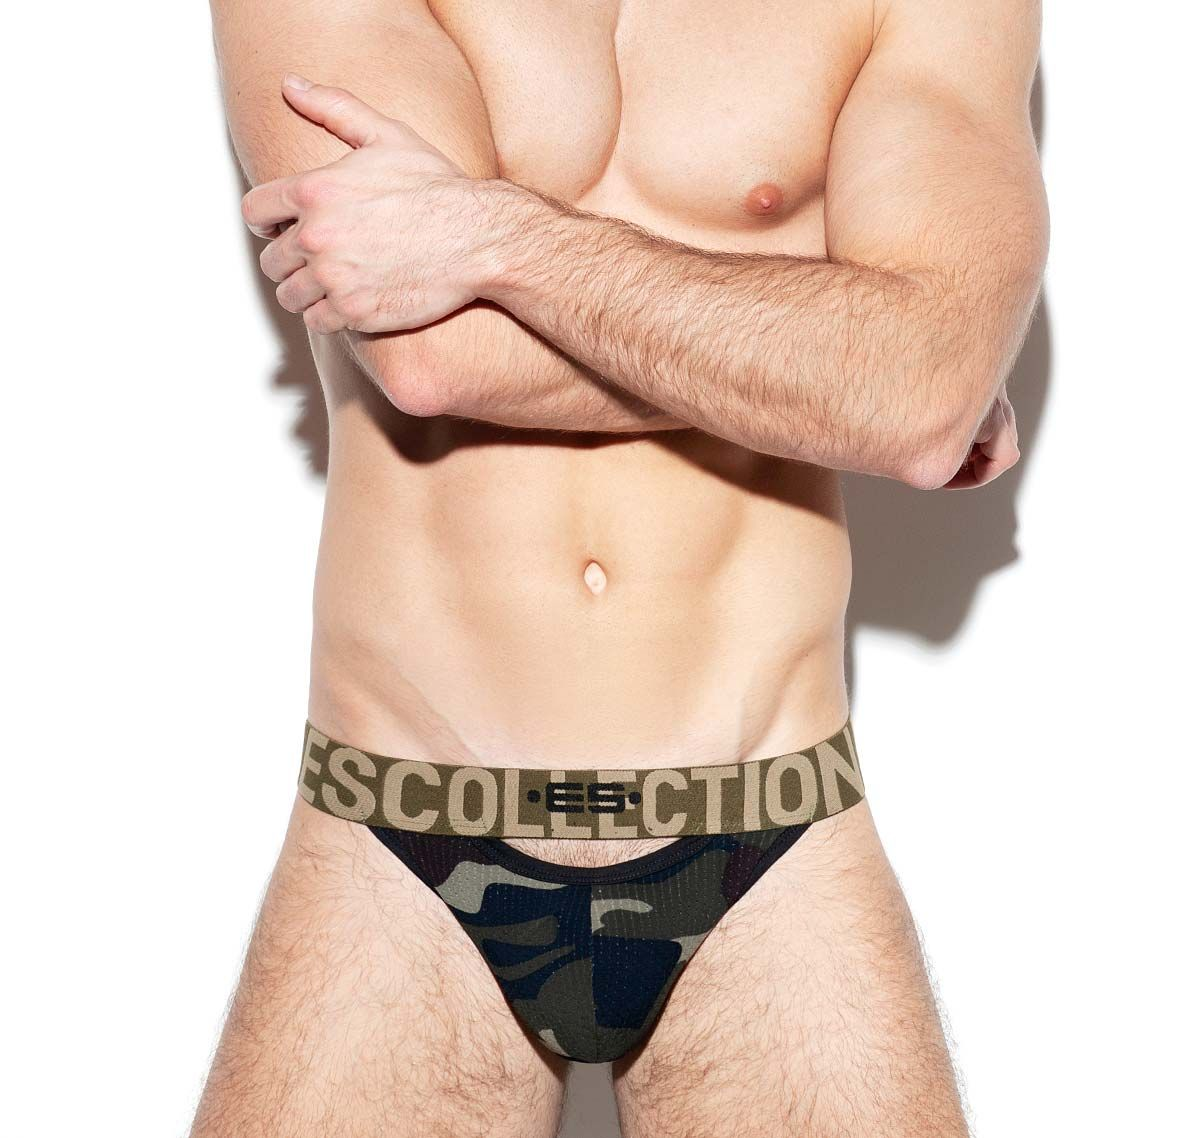 ES Collection Brief DOUBLE OPENING MESH BIKINI UN332, camouflage